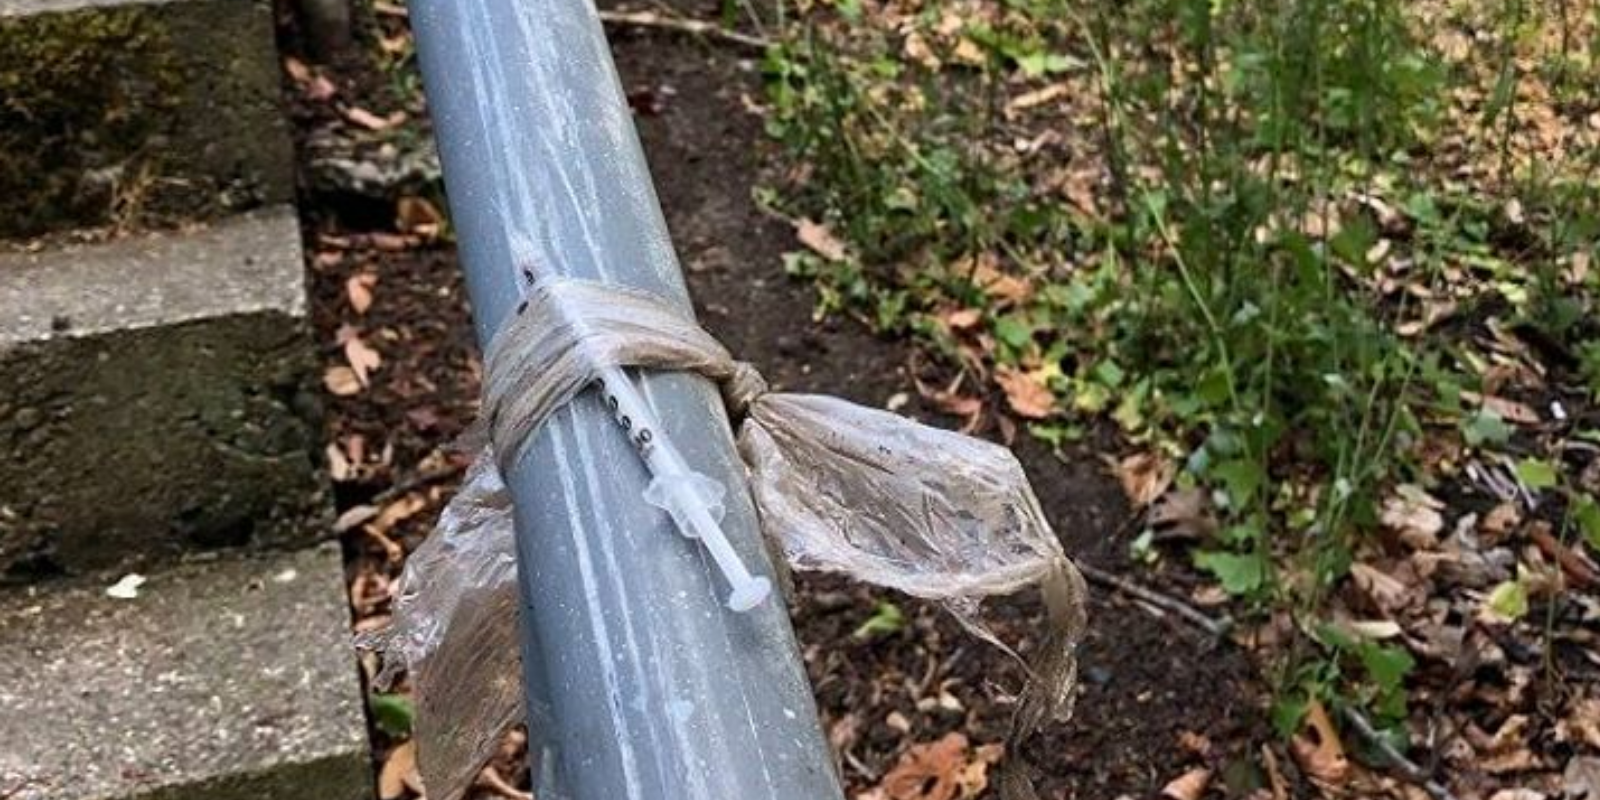 Victoria Police issue public warning after used needle found wrapped around a railing